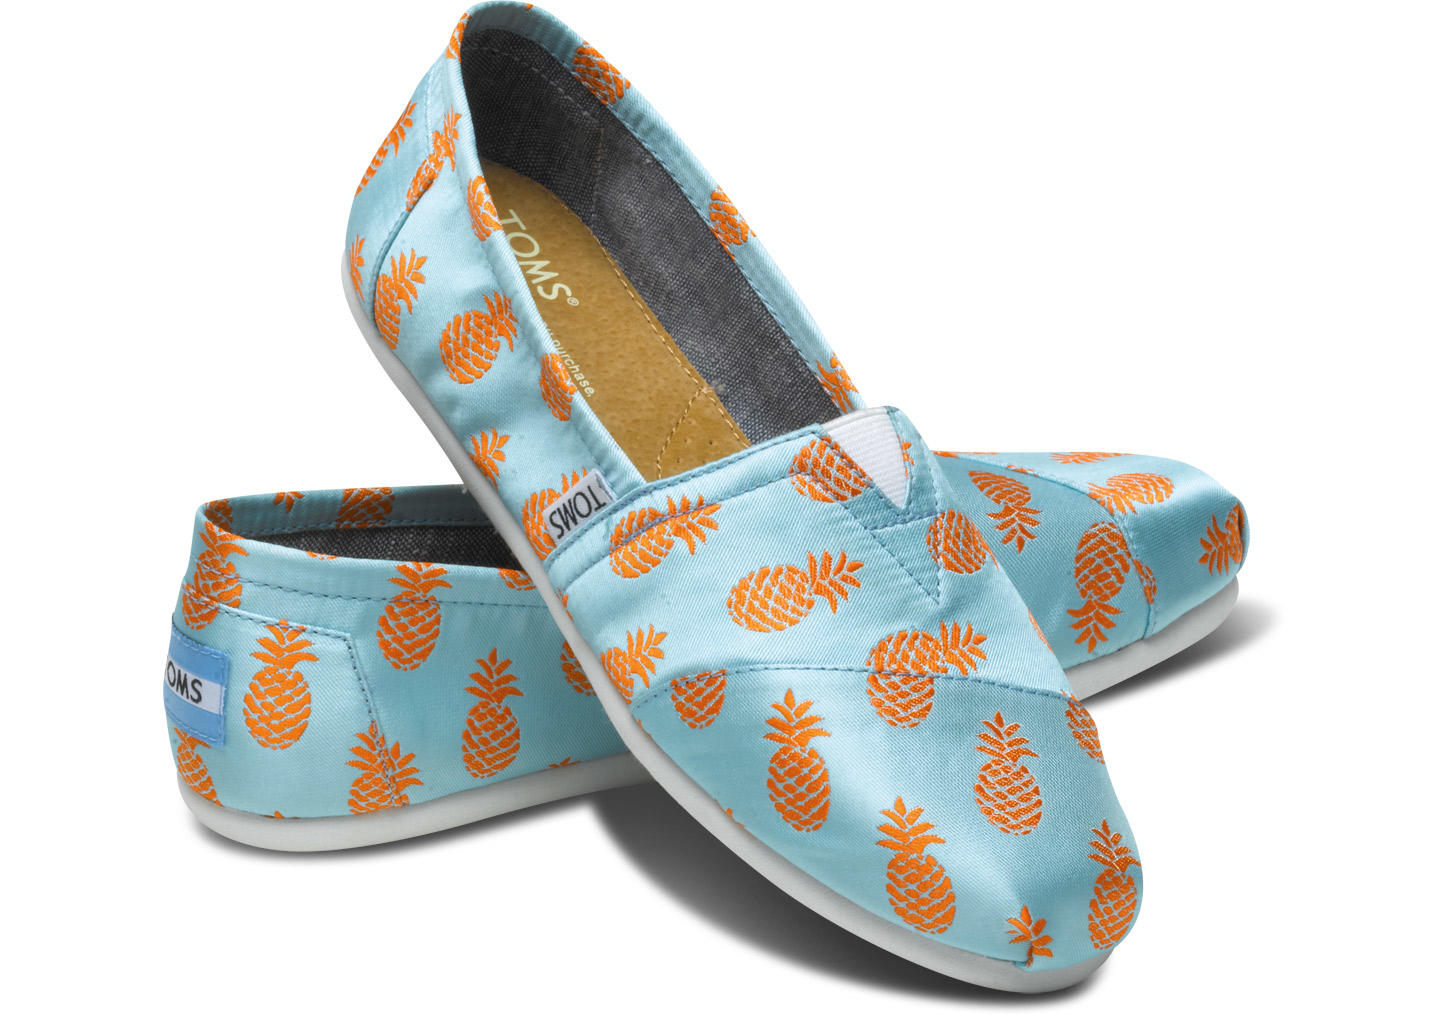 Toms Shoes Store In Florida